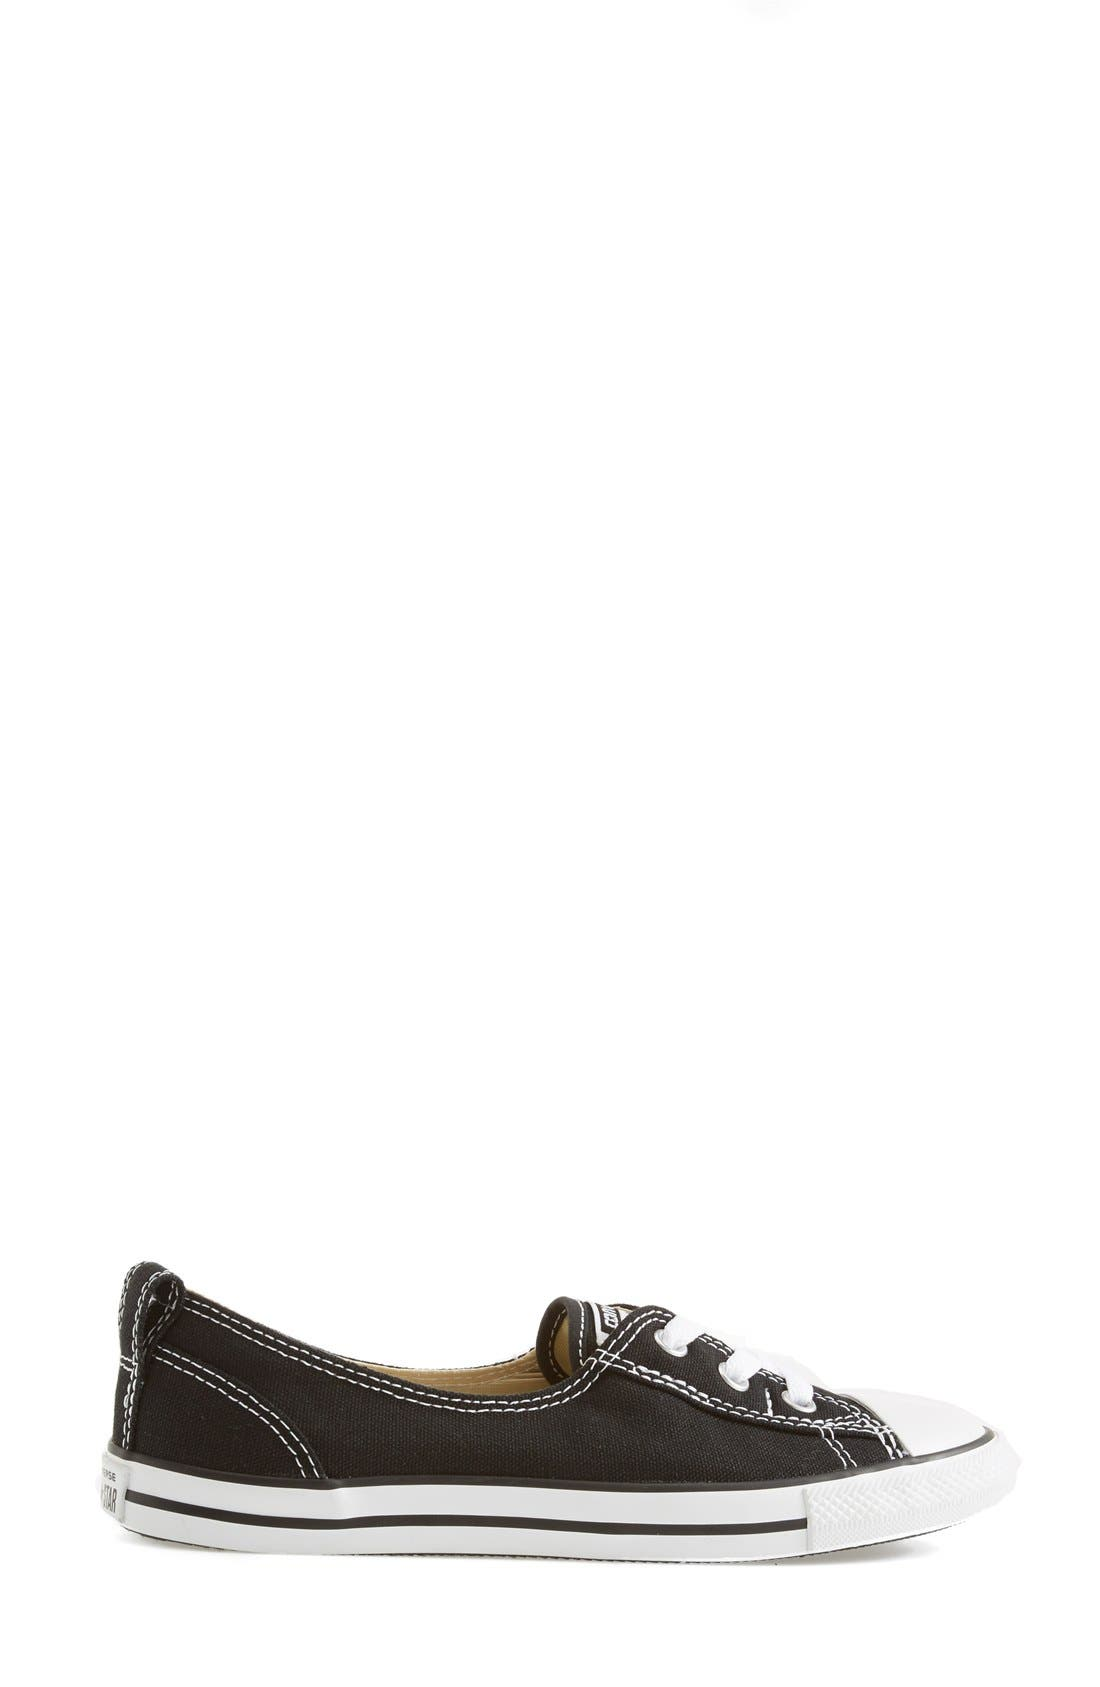 ,                             Chuck Taylor<sup>®</sup> All Star<sup>®</sup> Ballet Canvas Sneaker,                             Alternate thumbnail 3, color,                             001